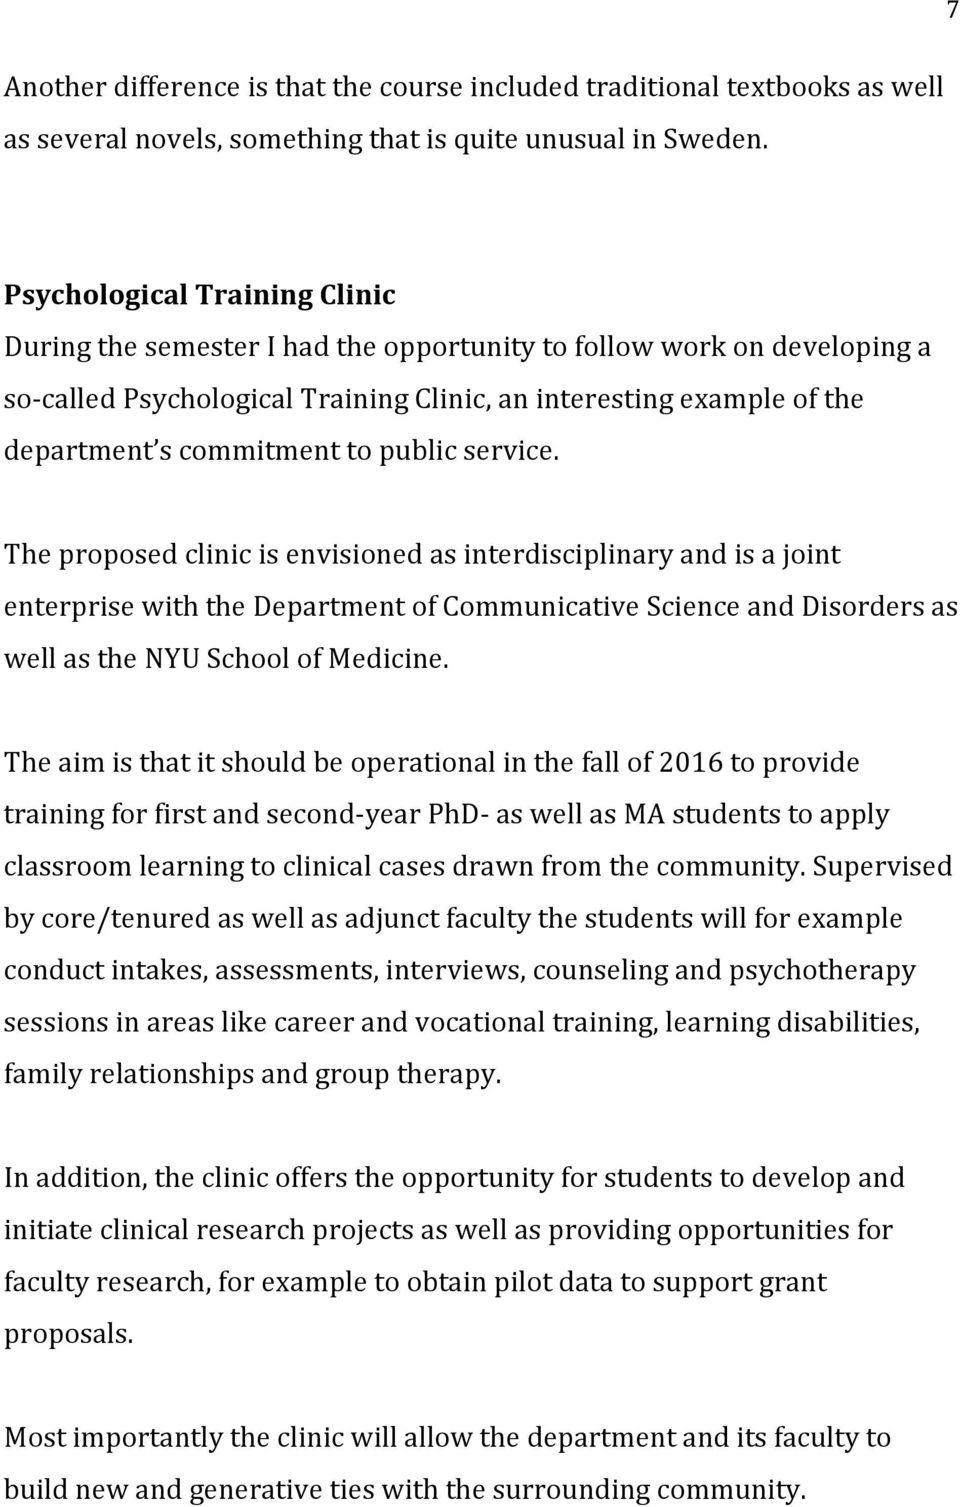 to public service. The proposed clinic is envisioned as interdisciplinary and is a joint enterprise with the Department of Communicative Science and Disorders as well as the NYU School of Medicine.